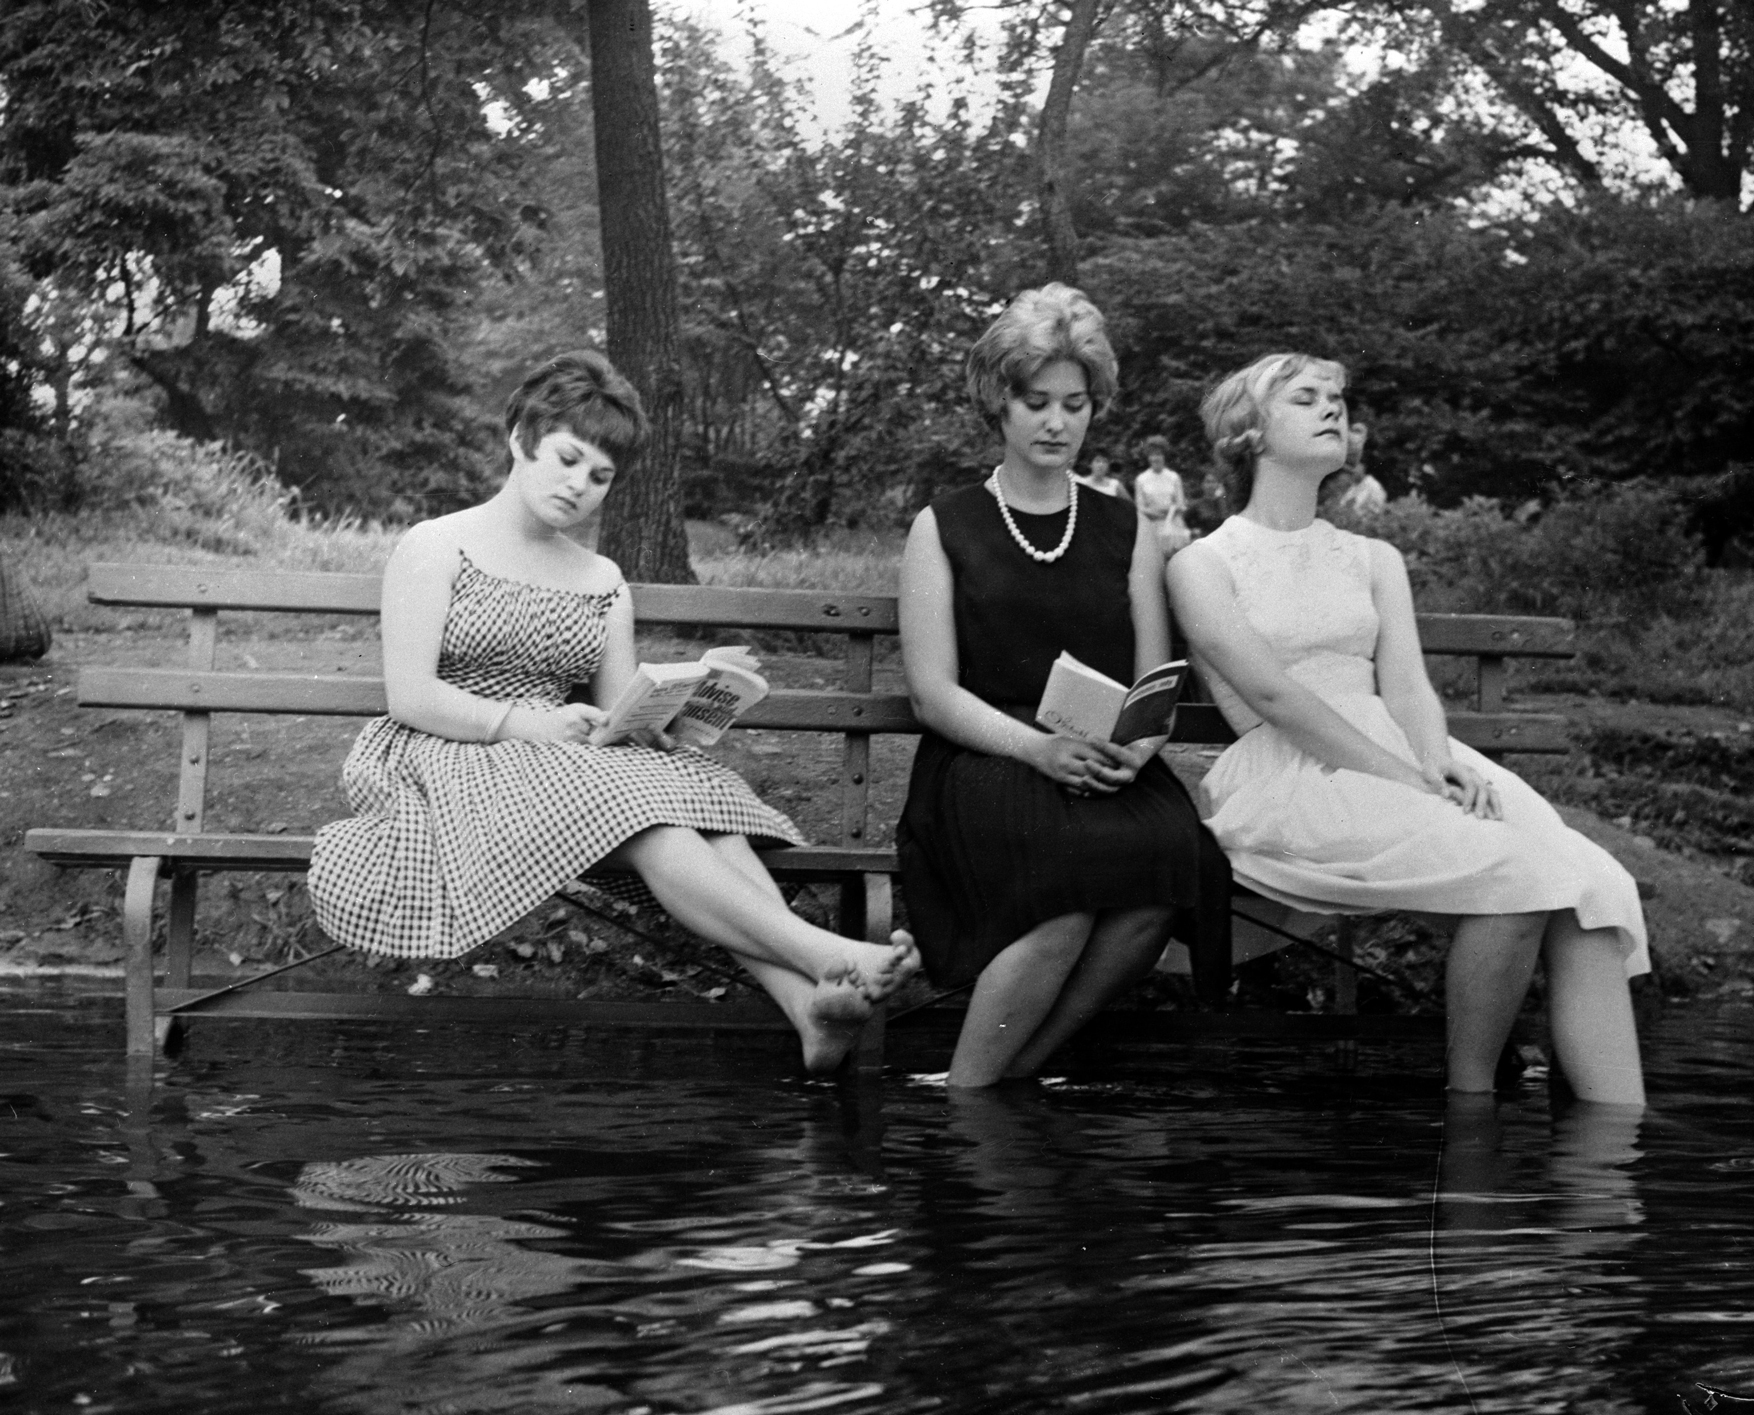 September 1961: Three women keep cool during a heat wave by moving a park bench into the water in Central Park, New York. (Photo by Keystone Features/Getty Images)